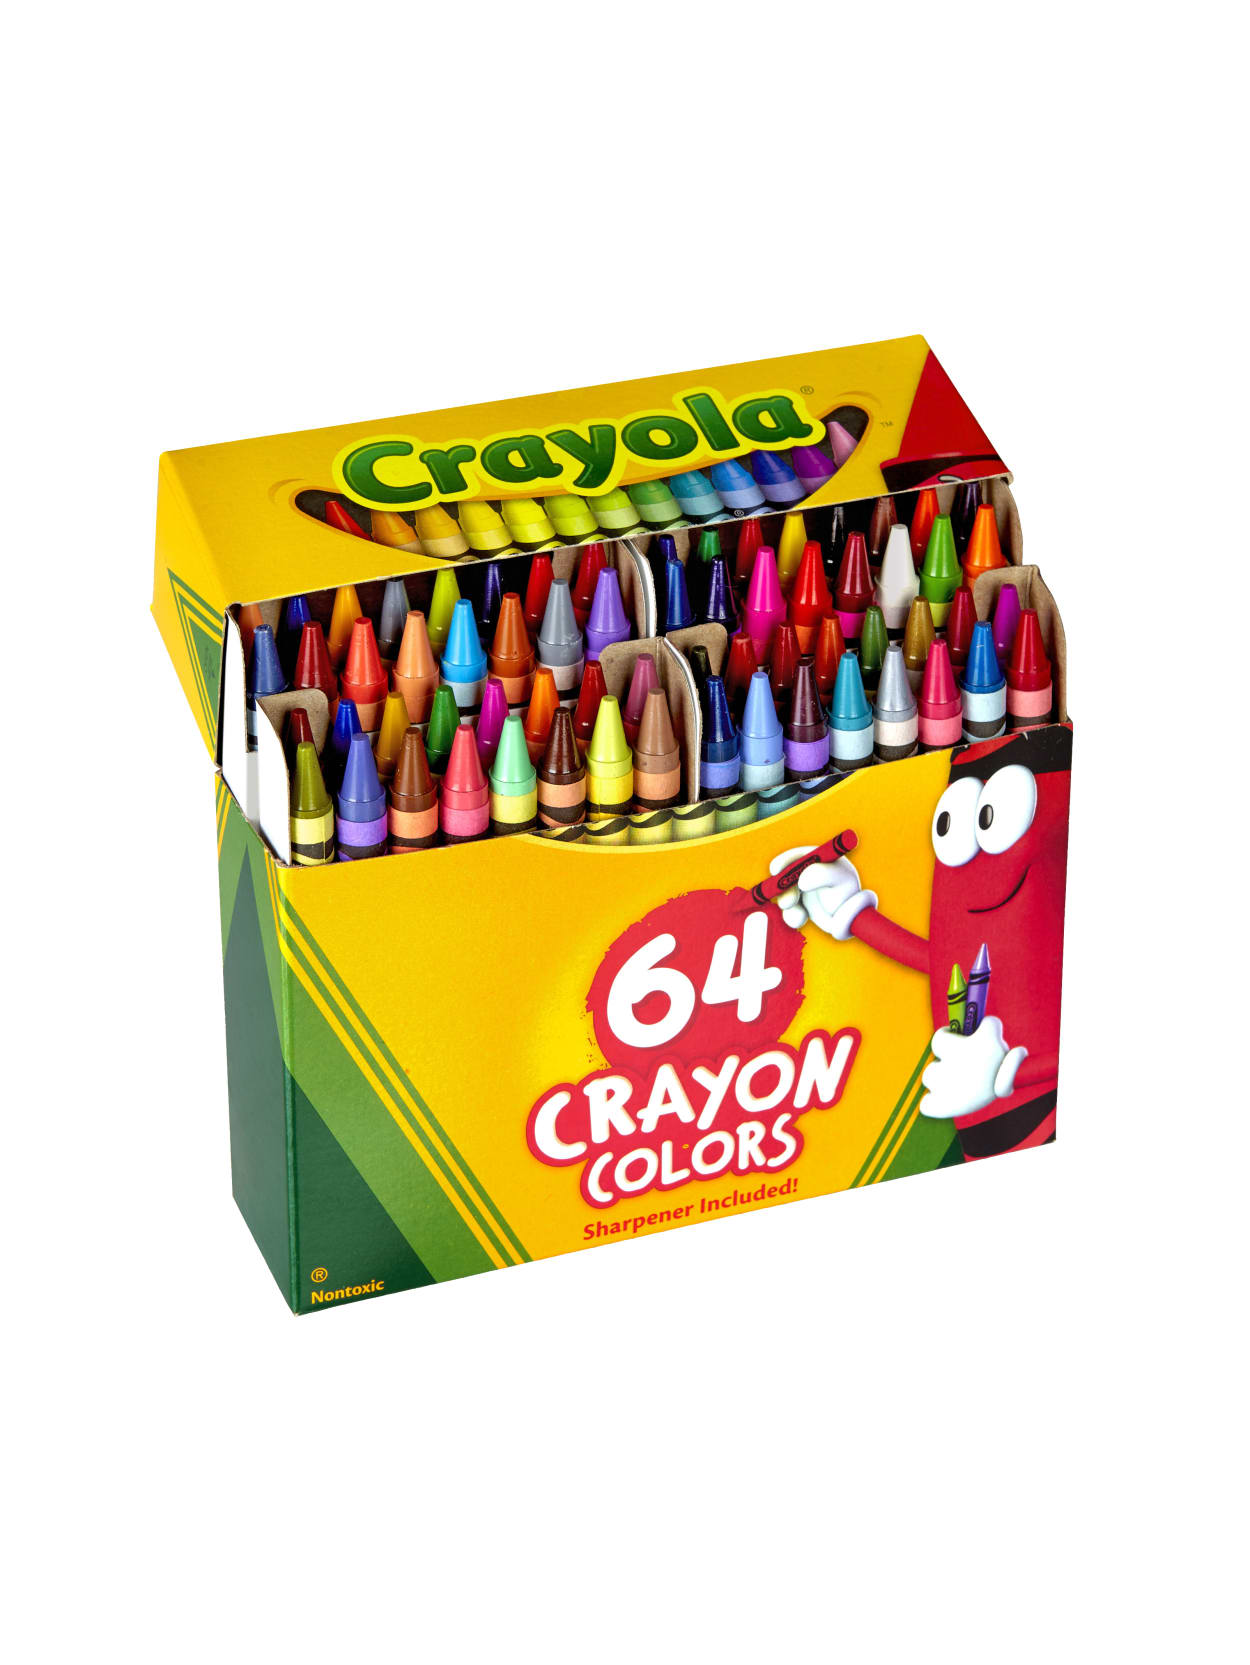 Crayola Standard Crayons With Built In Sharpener Assorted Colors Box Of 64 Crayons Office Depot